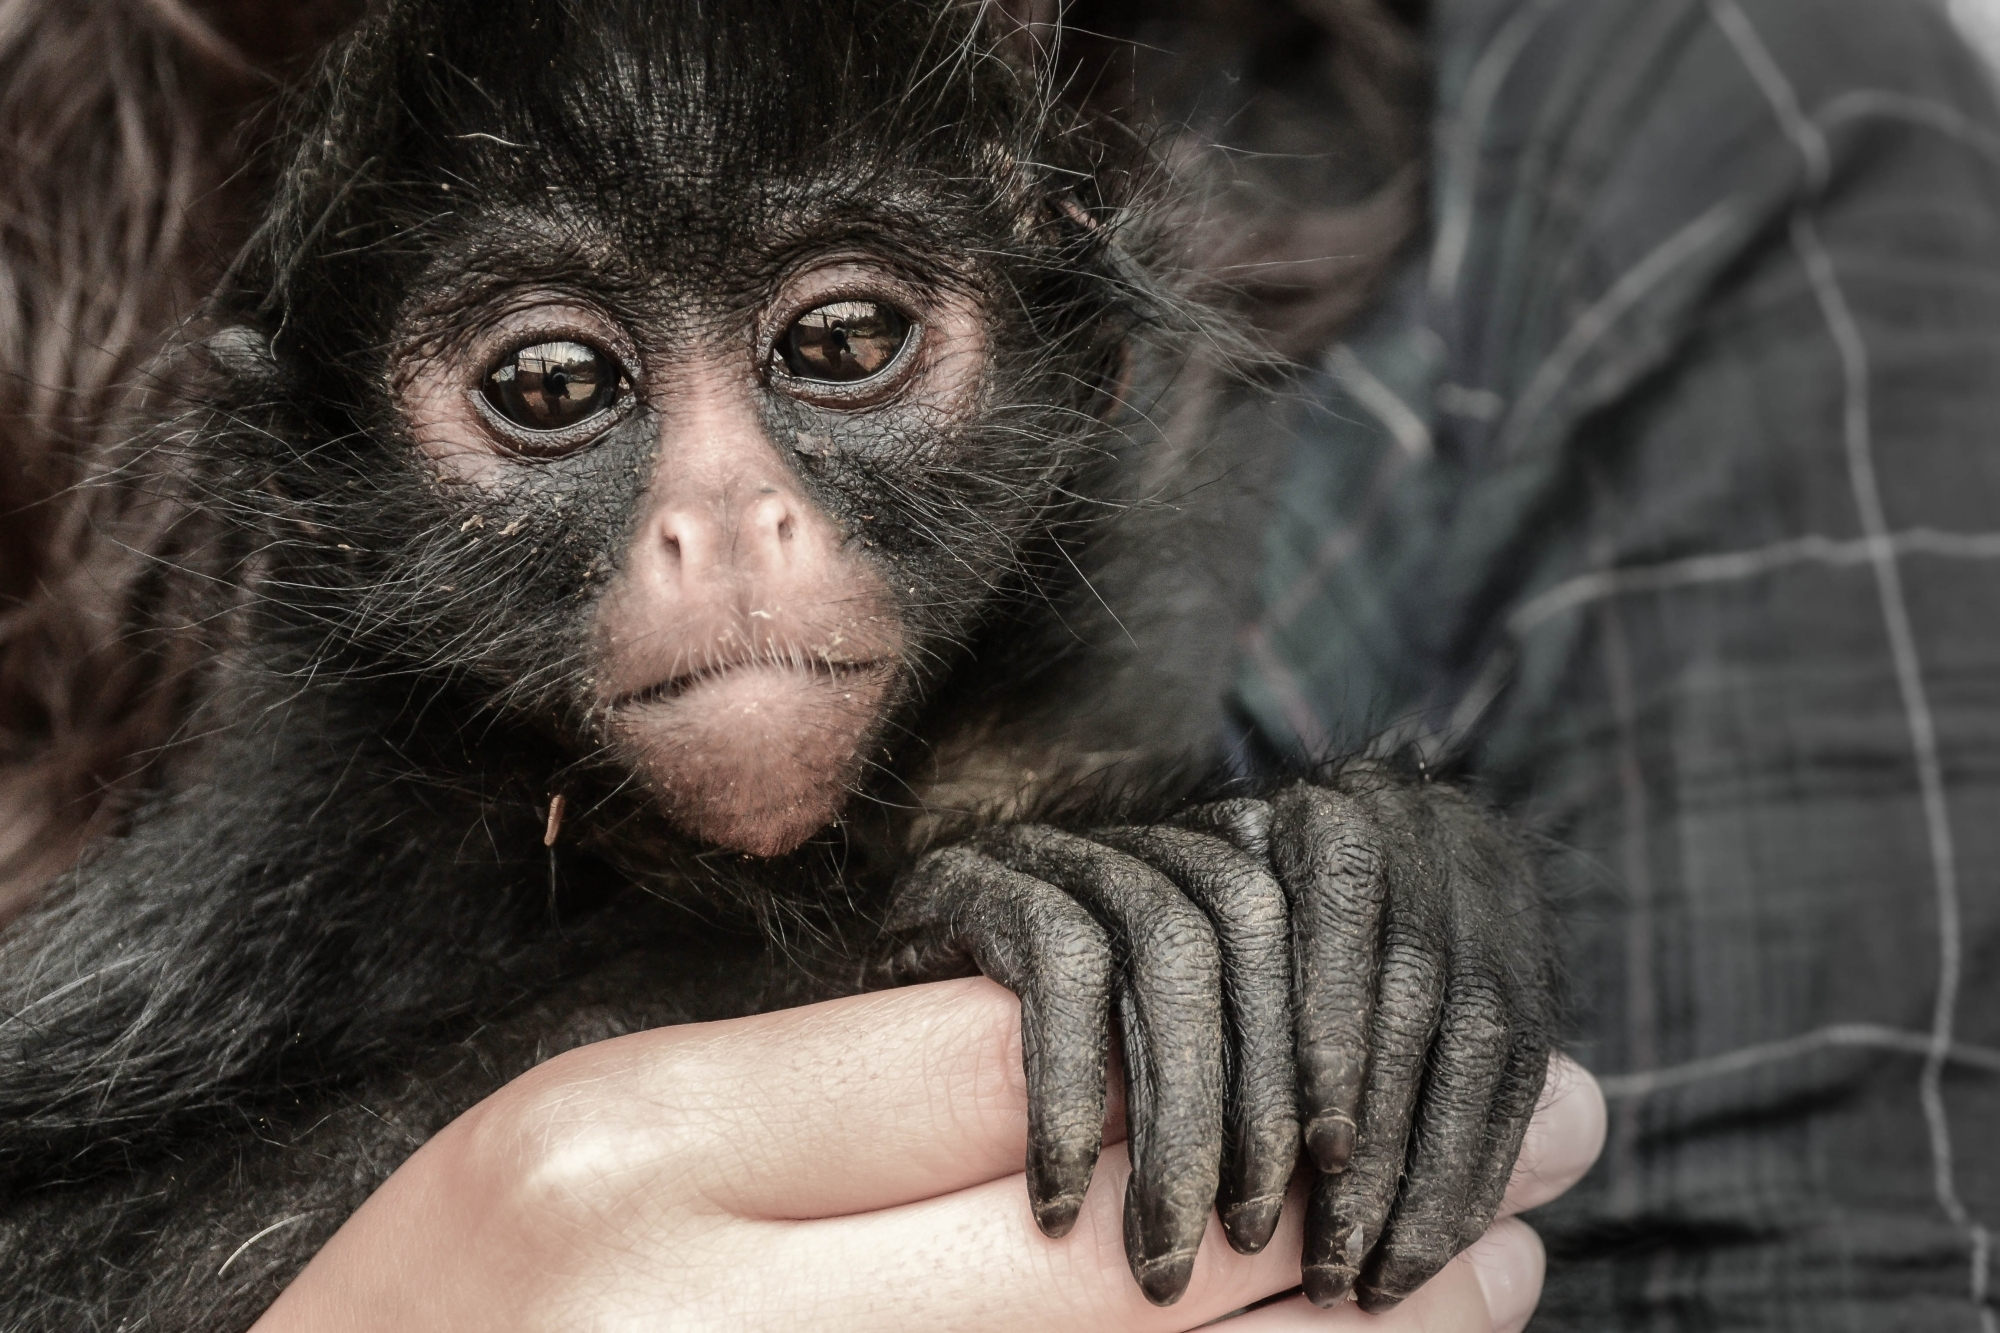 weird looking monkey with long fingers